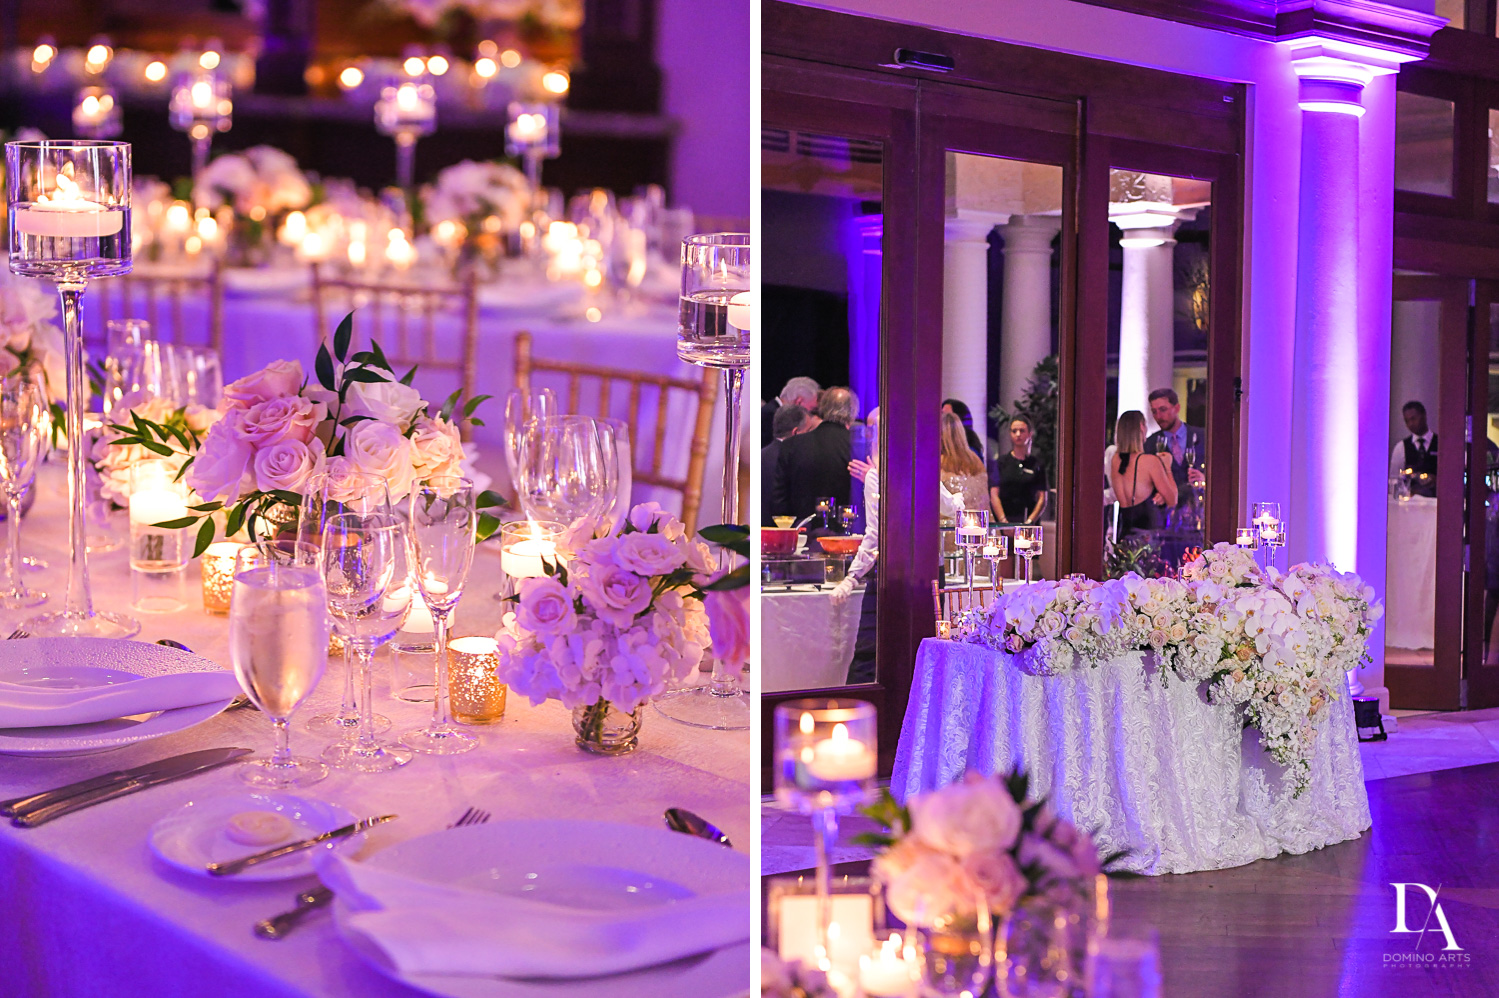 Purple decor at Extravagant Wedding at The Breakers Palm Beach by Domino Arts Photography